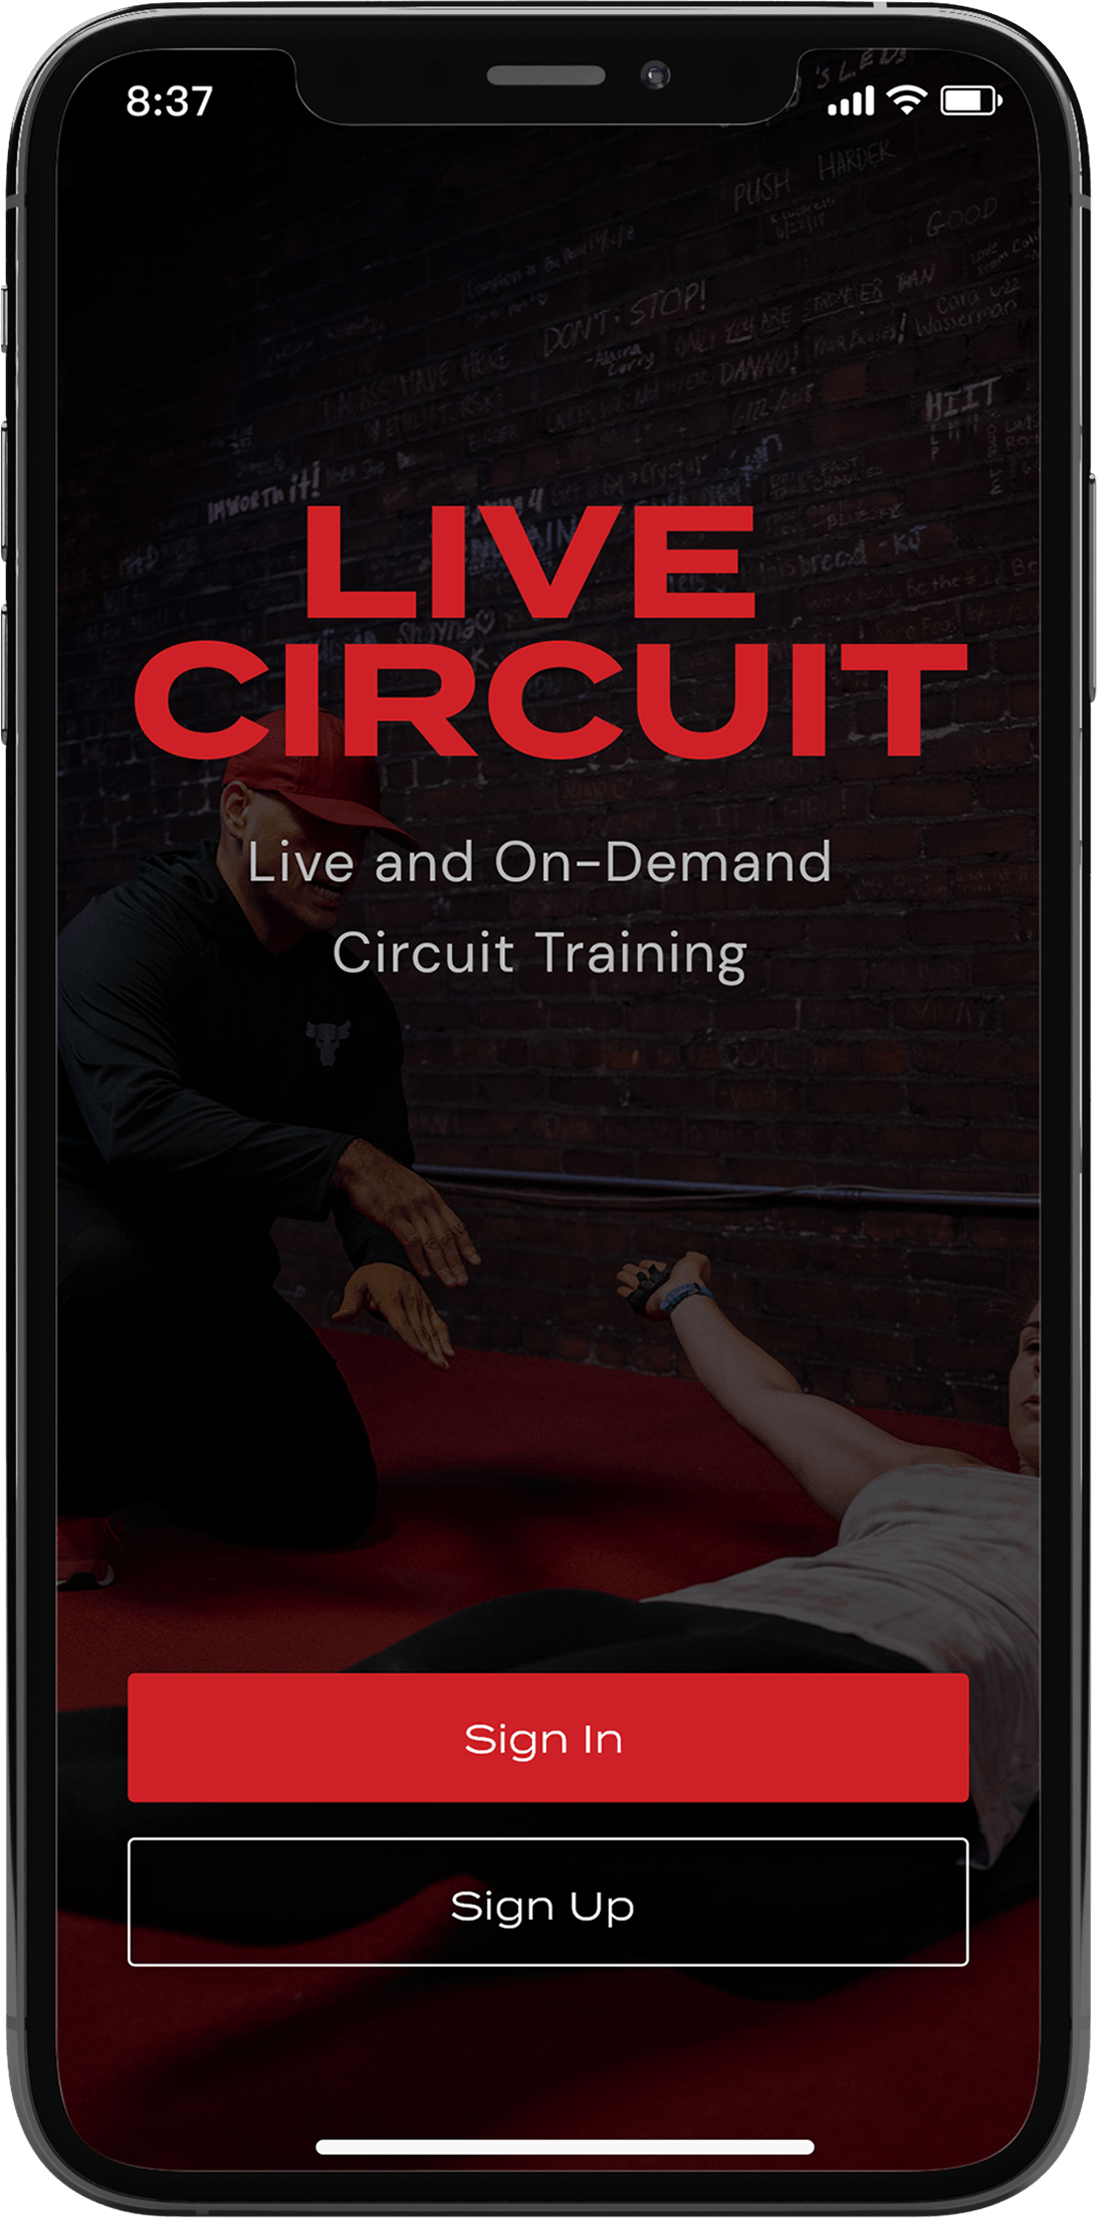 prototype design of live circuit mobile app sign in page